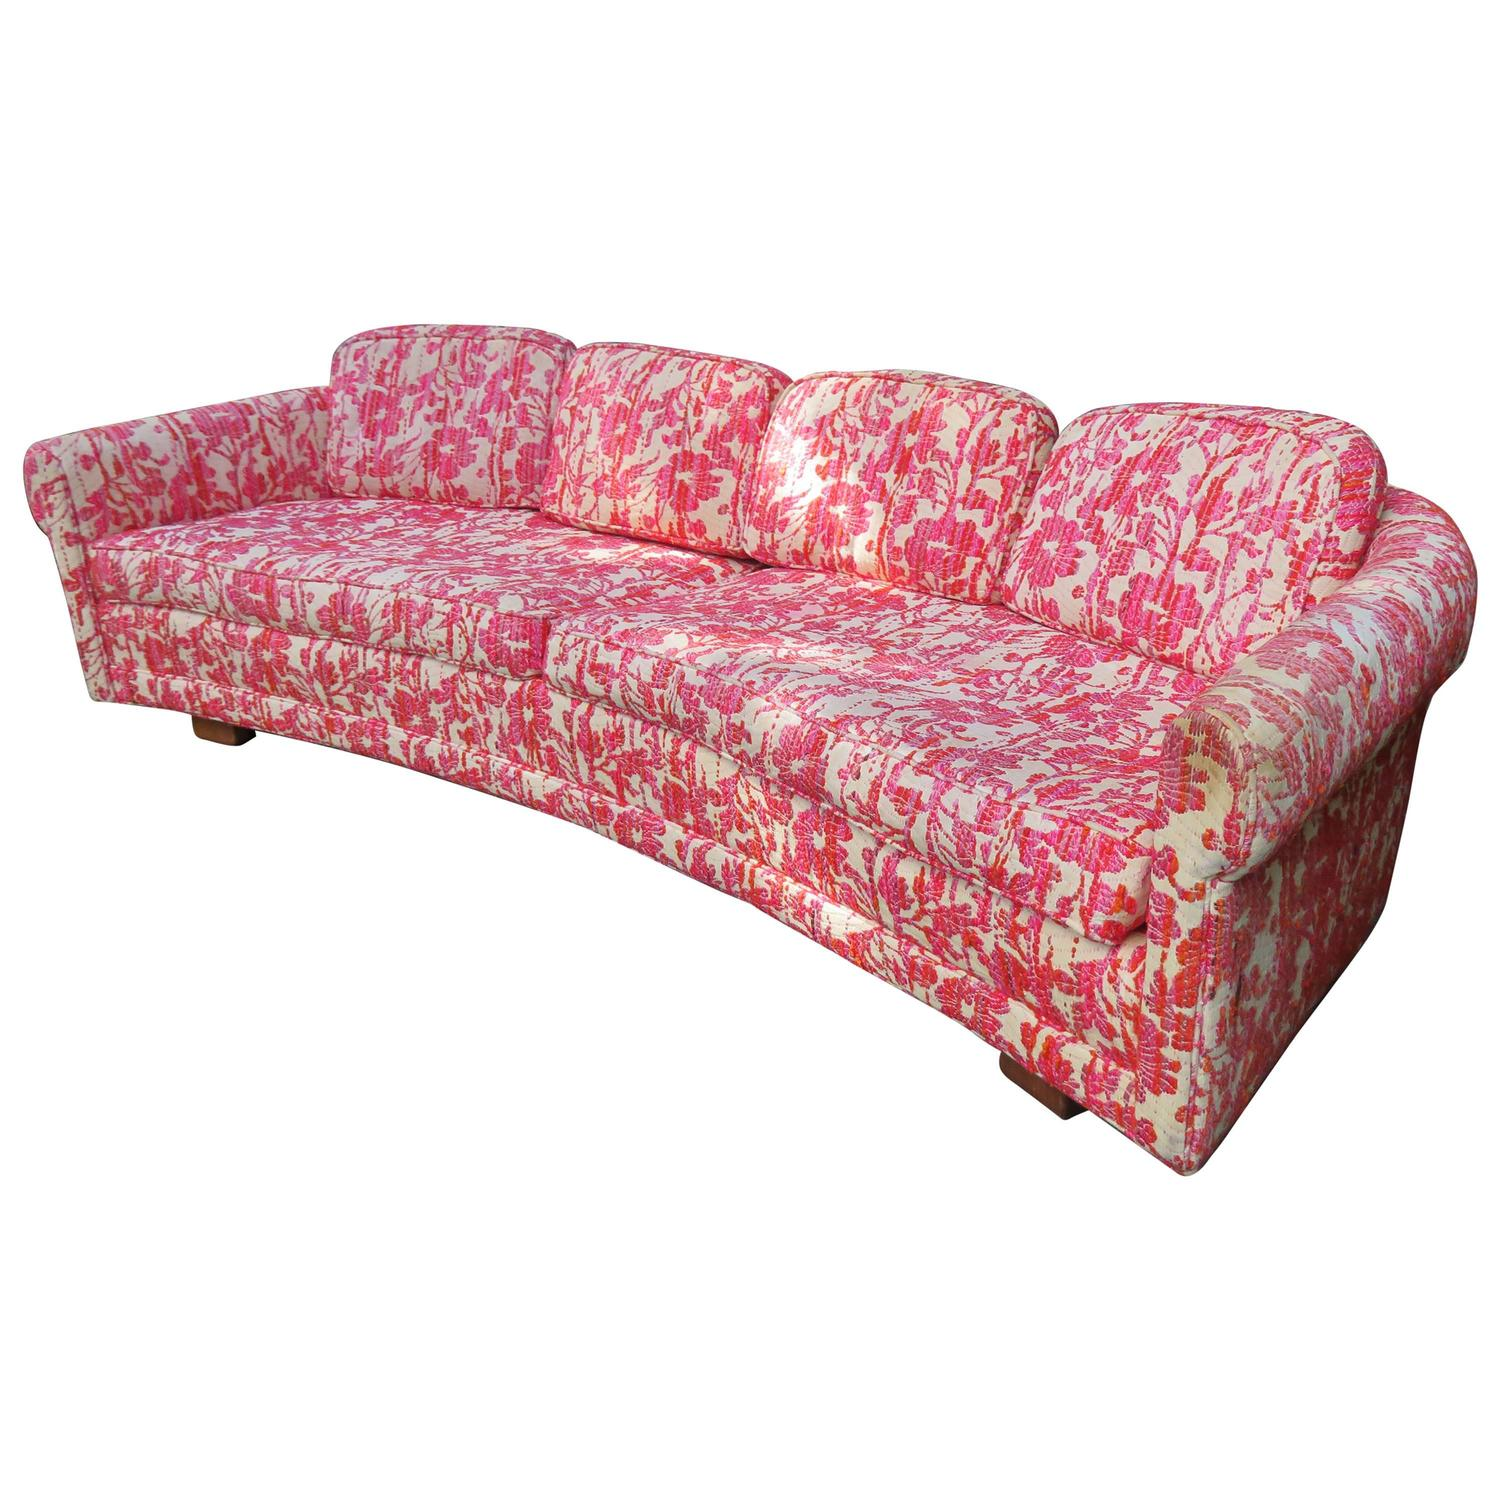 Charming Mid-Century Modern Low Curved Sofa Selig For Sale at 1stdibs